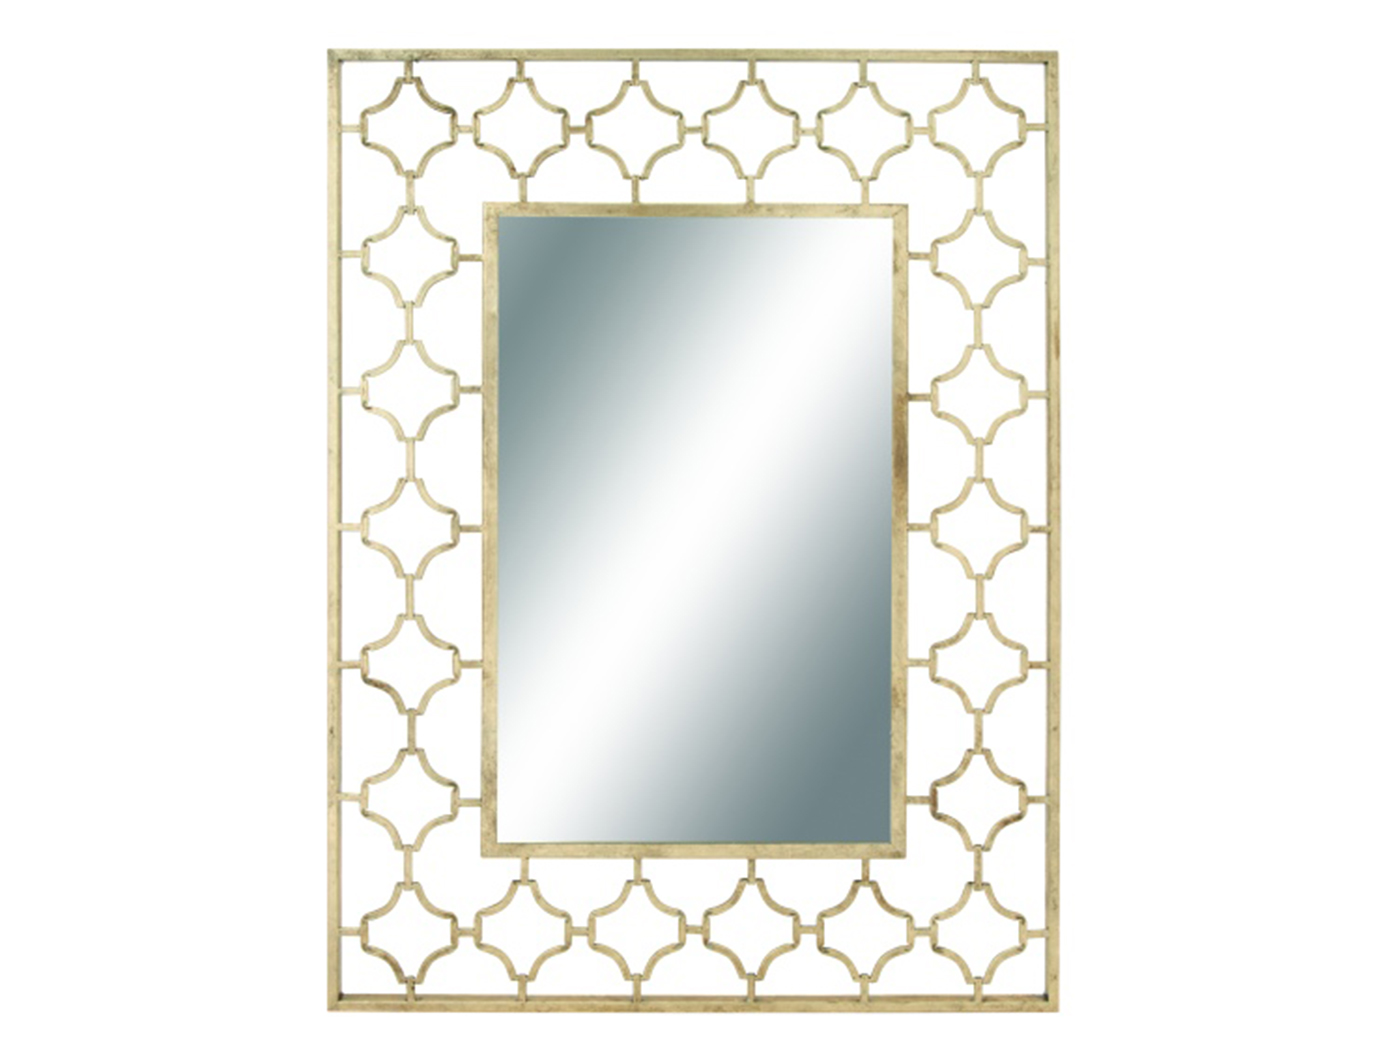 "Gold Metal Cutout Wall Mirror 38""W x 50""H"